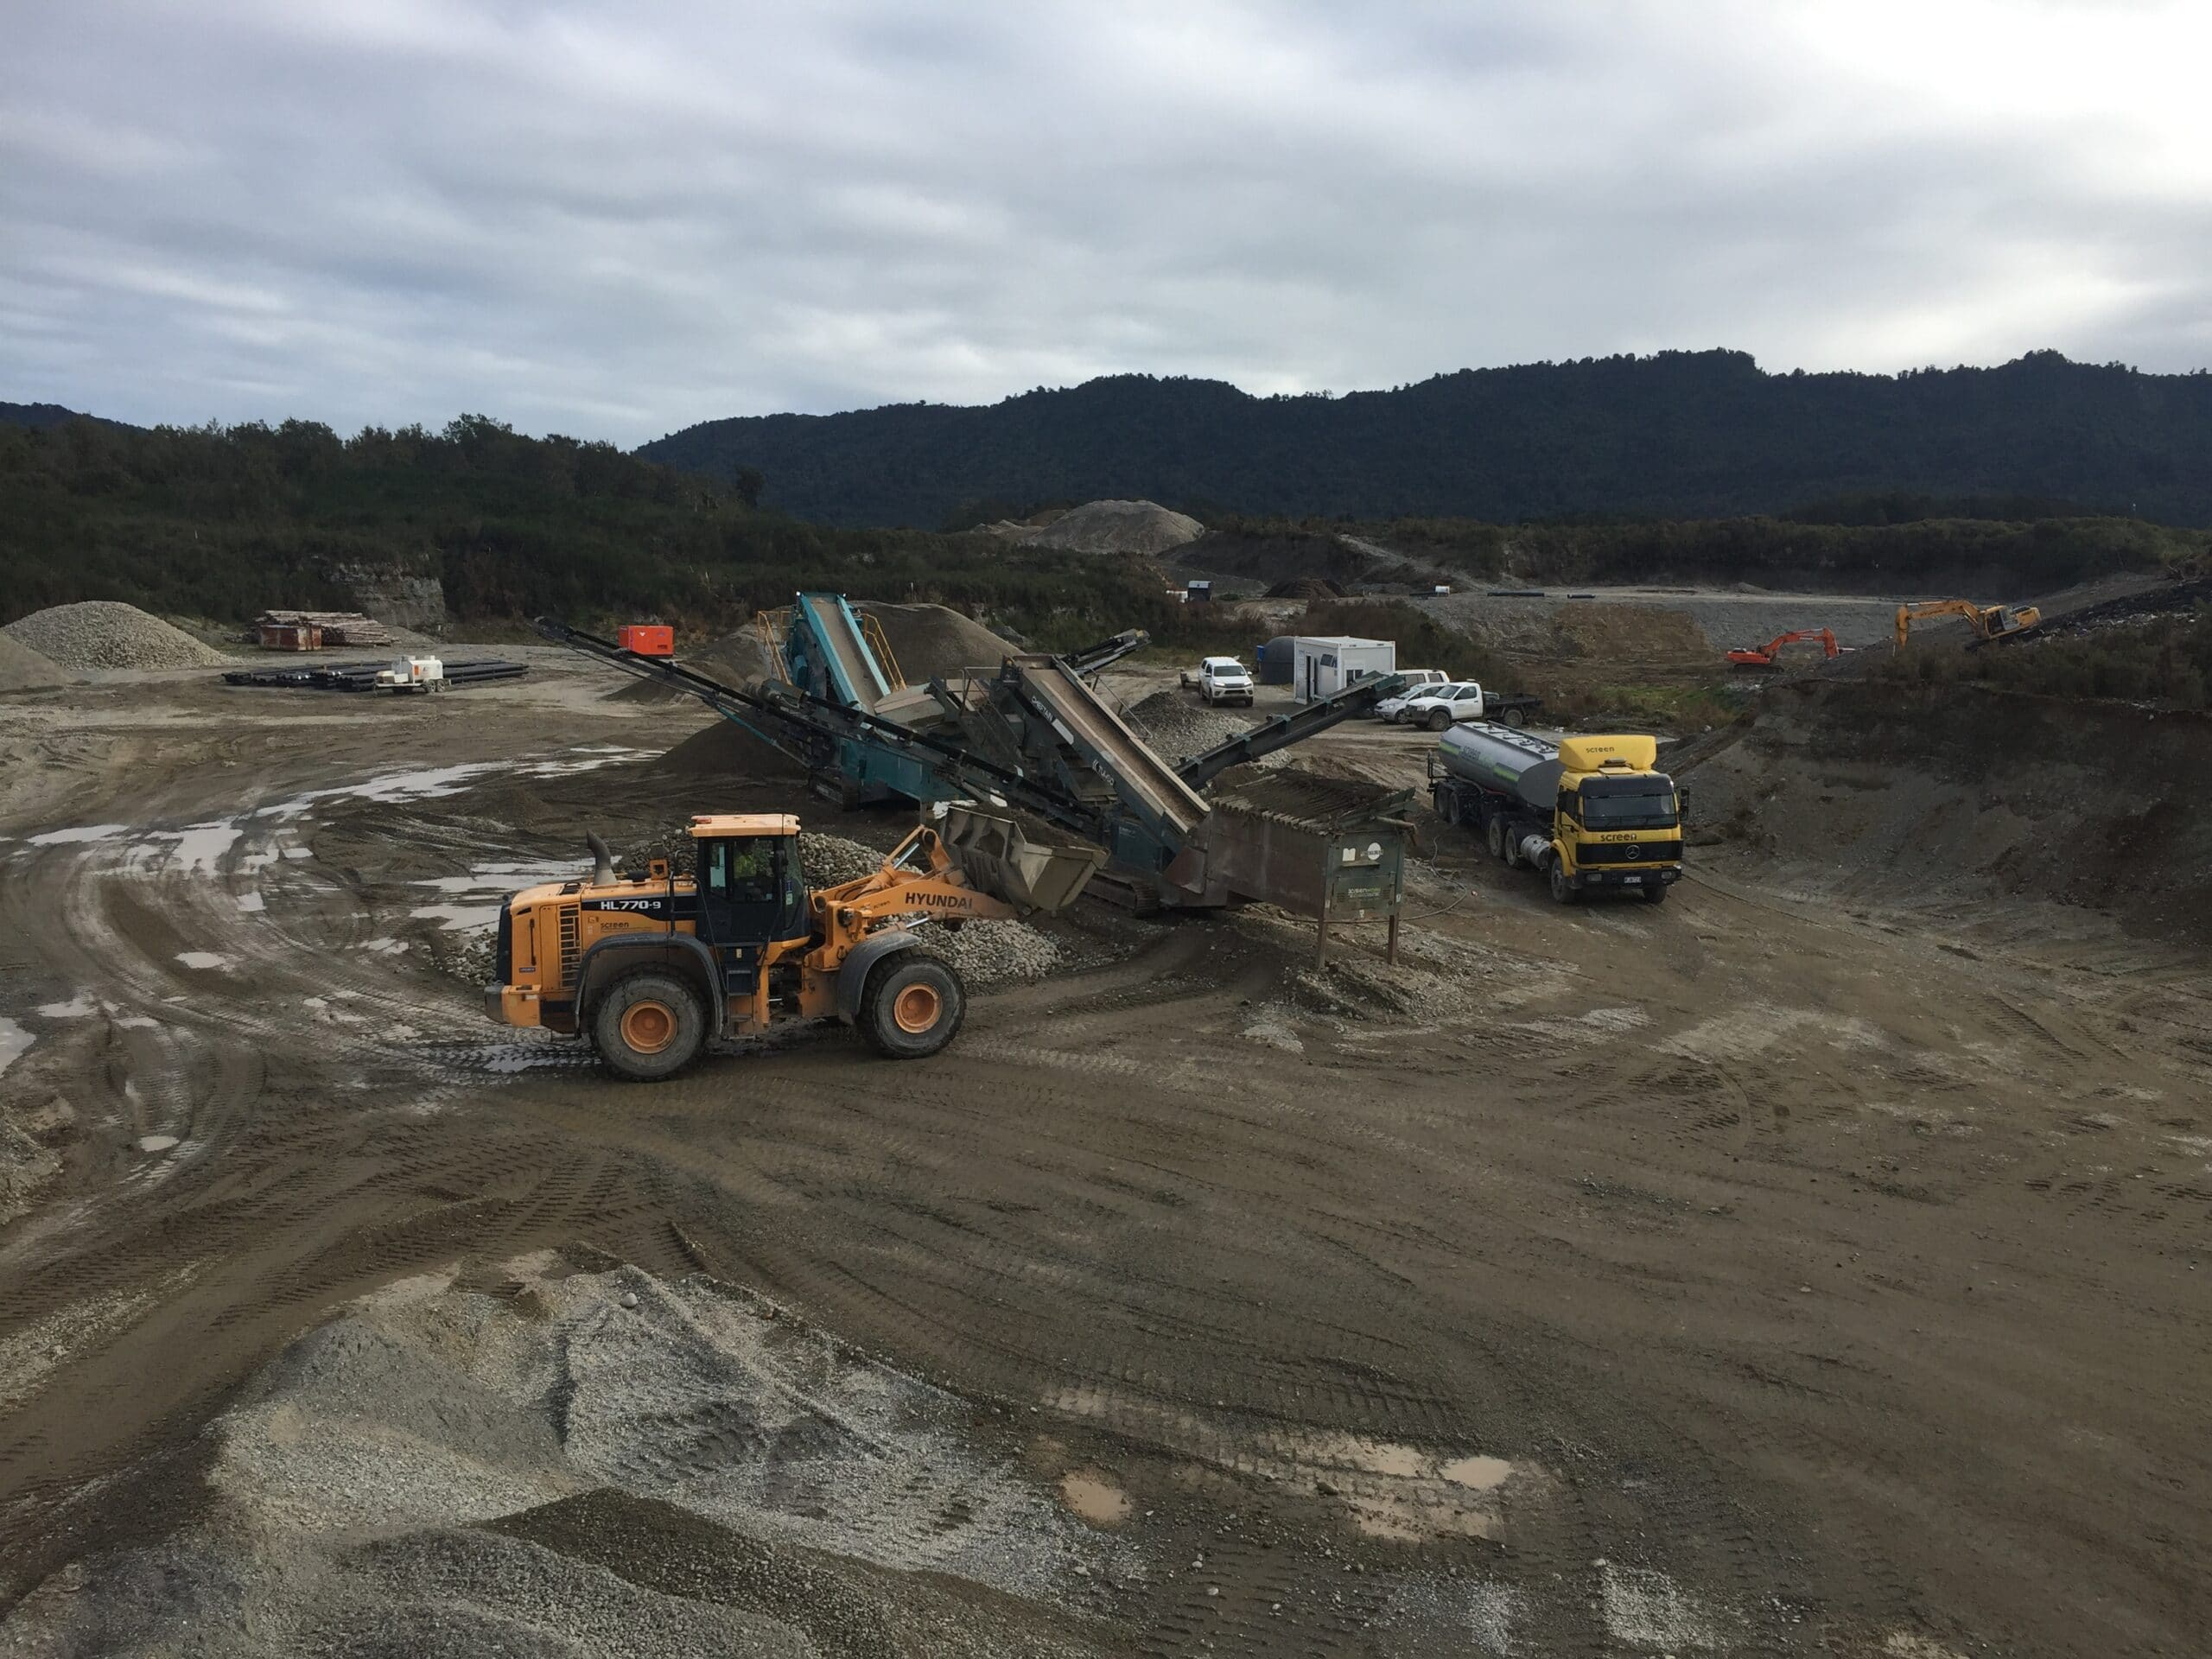 GrantHood_McLeans-Pit-Landfill-3a-12